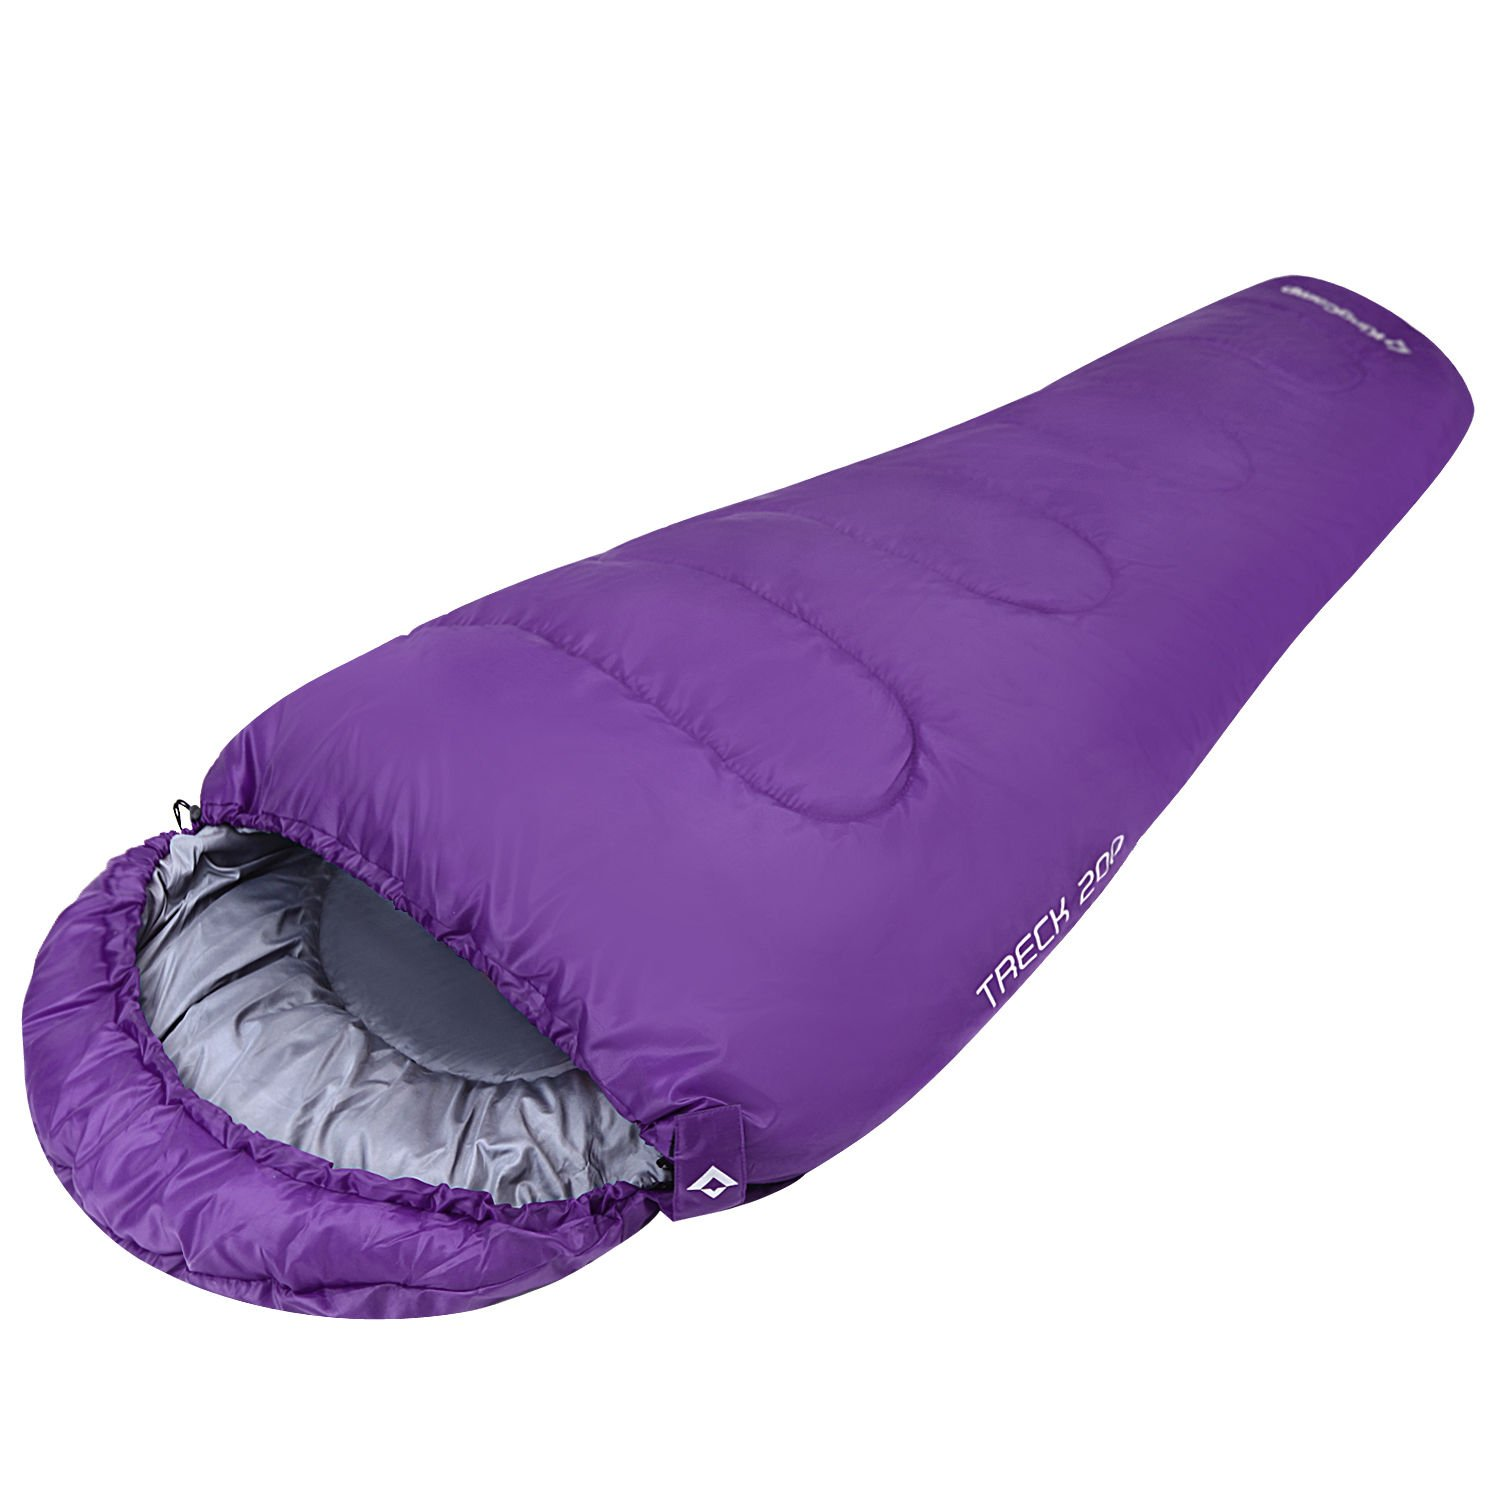 Treck Mummy Sleeping Bag Camping Backpacking Water Repellent Variation